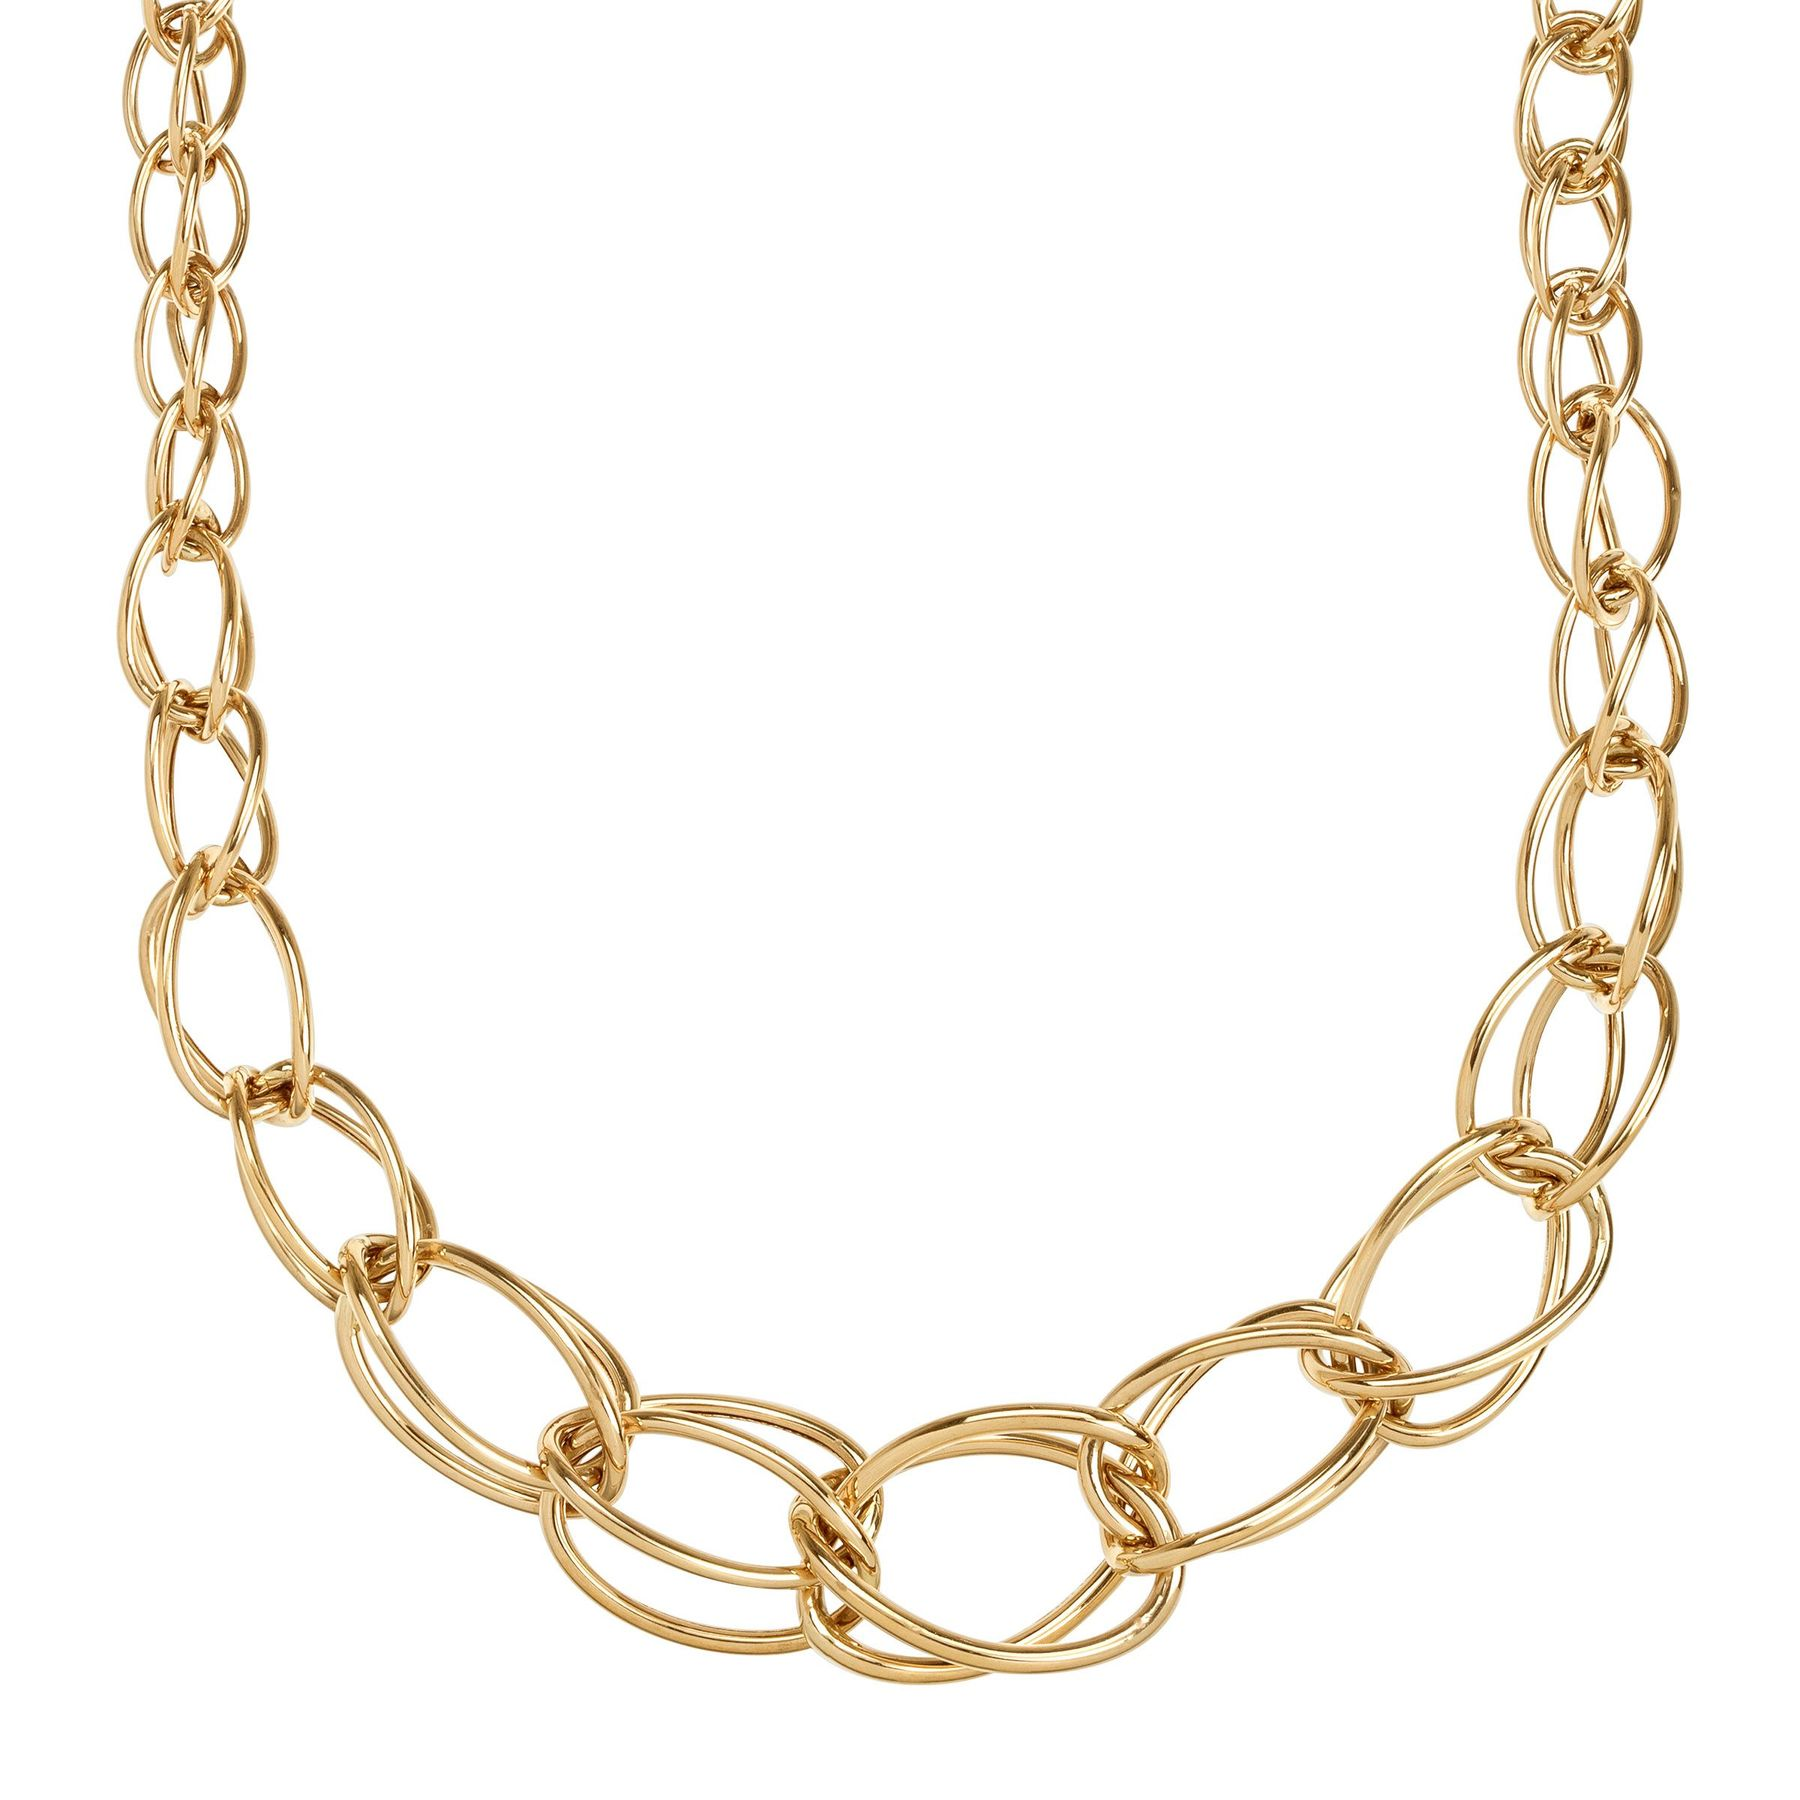 e28755ffe25 Eternity Gold Oval Graduated Link Necklace